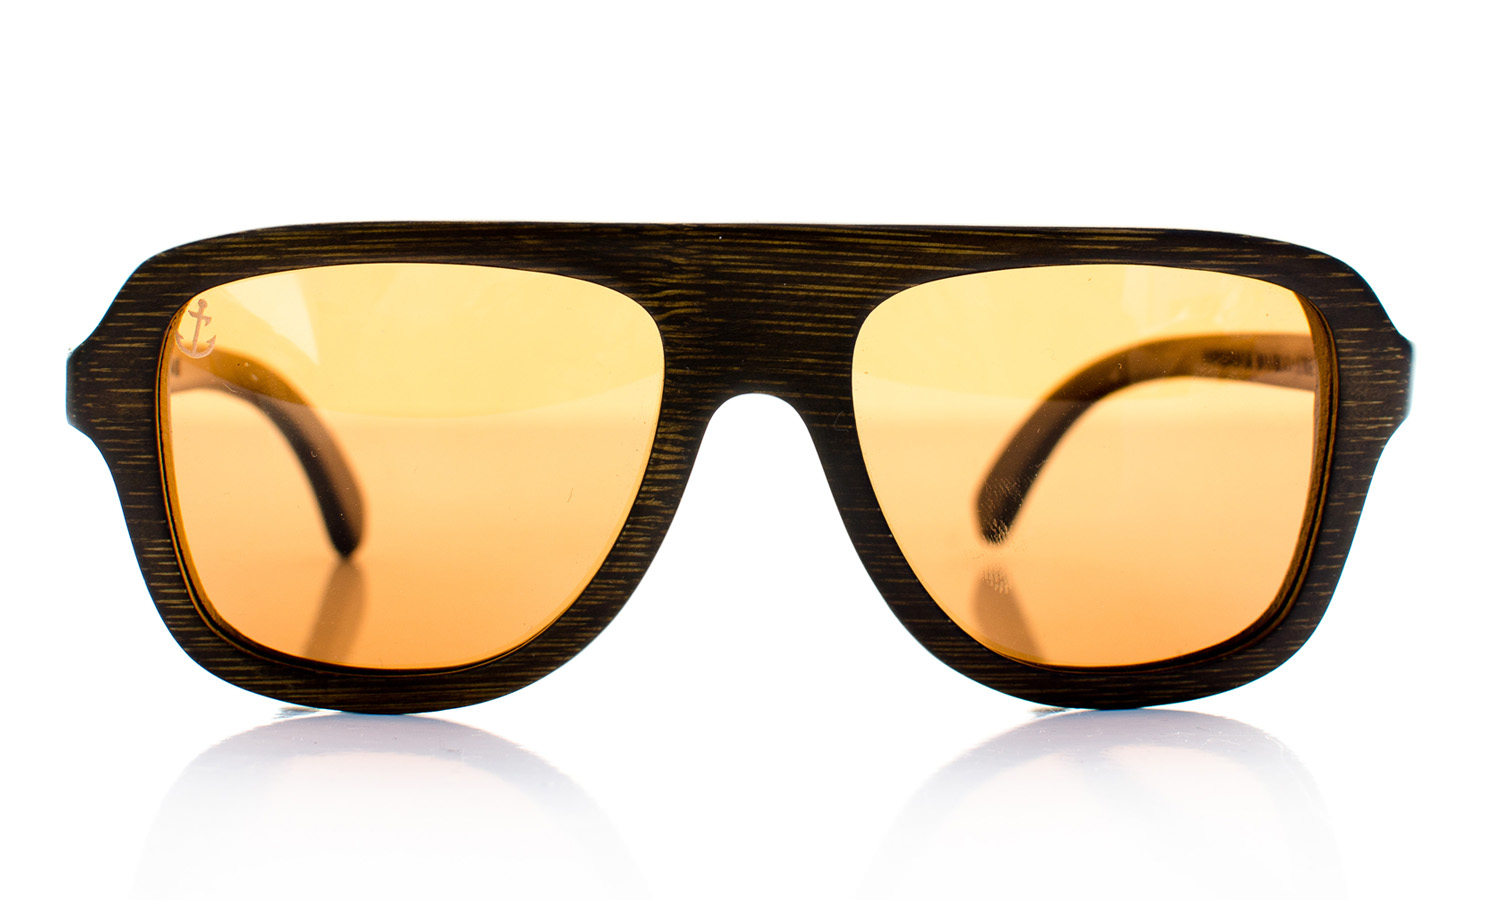 Aerostellar Wooden Eyewear Brown Bamboo Wood - Front View